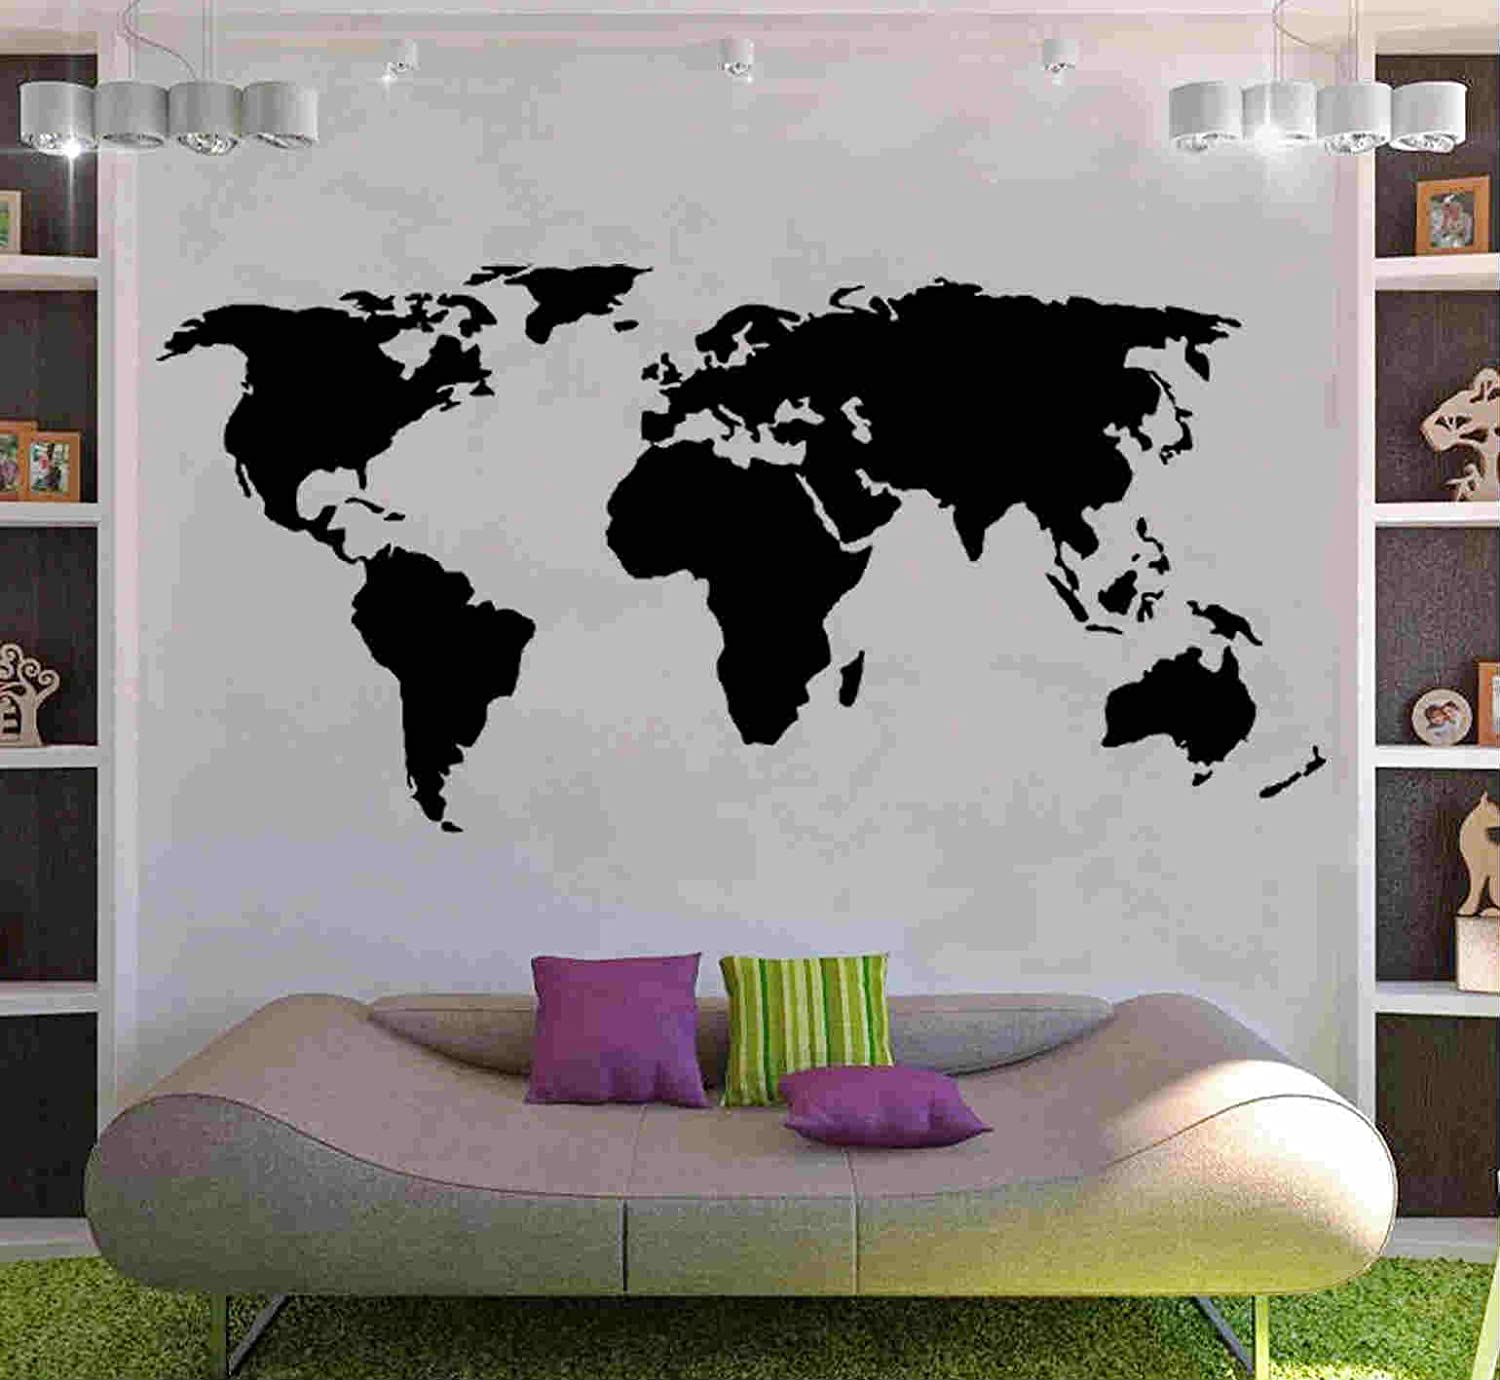 Wall world map vinyl sticker decal mural any colour 180 x 110cm world map decal wall sticker gumiabroncs Image collections